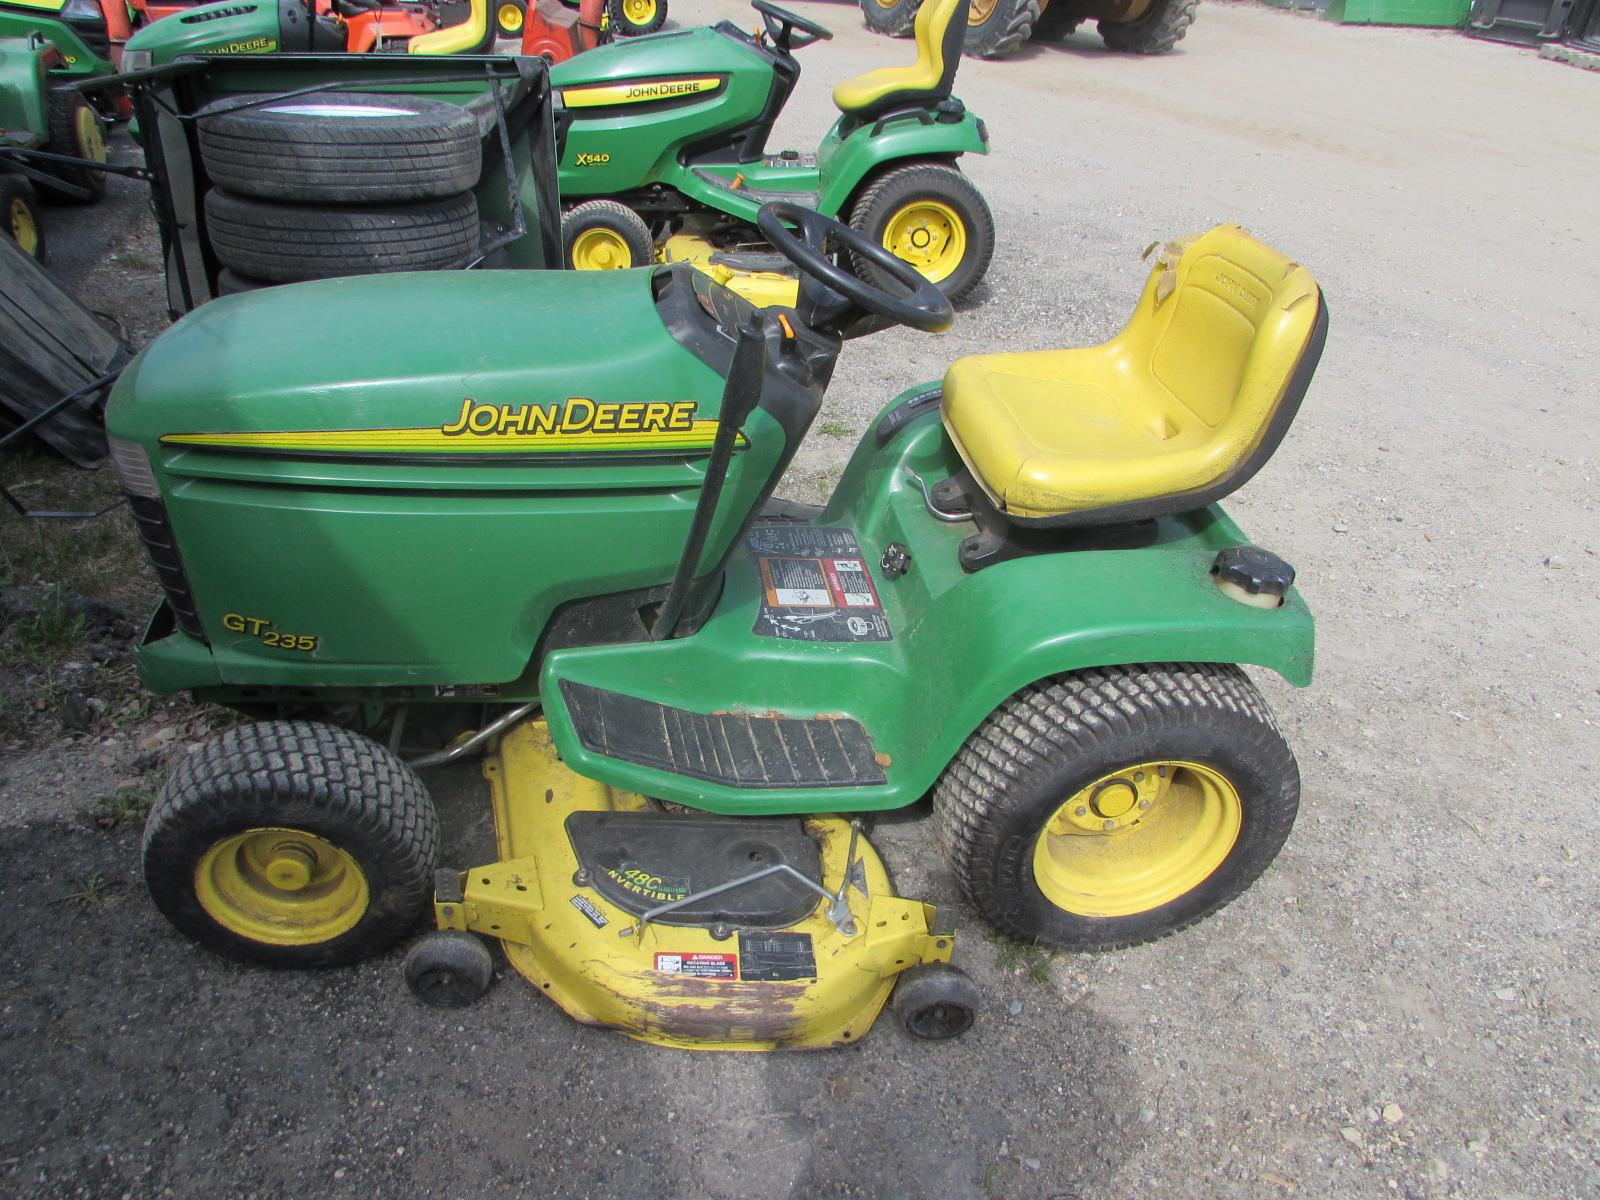 $1,999, 2002 John Deere GT235 RIDING LAWN MOWER